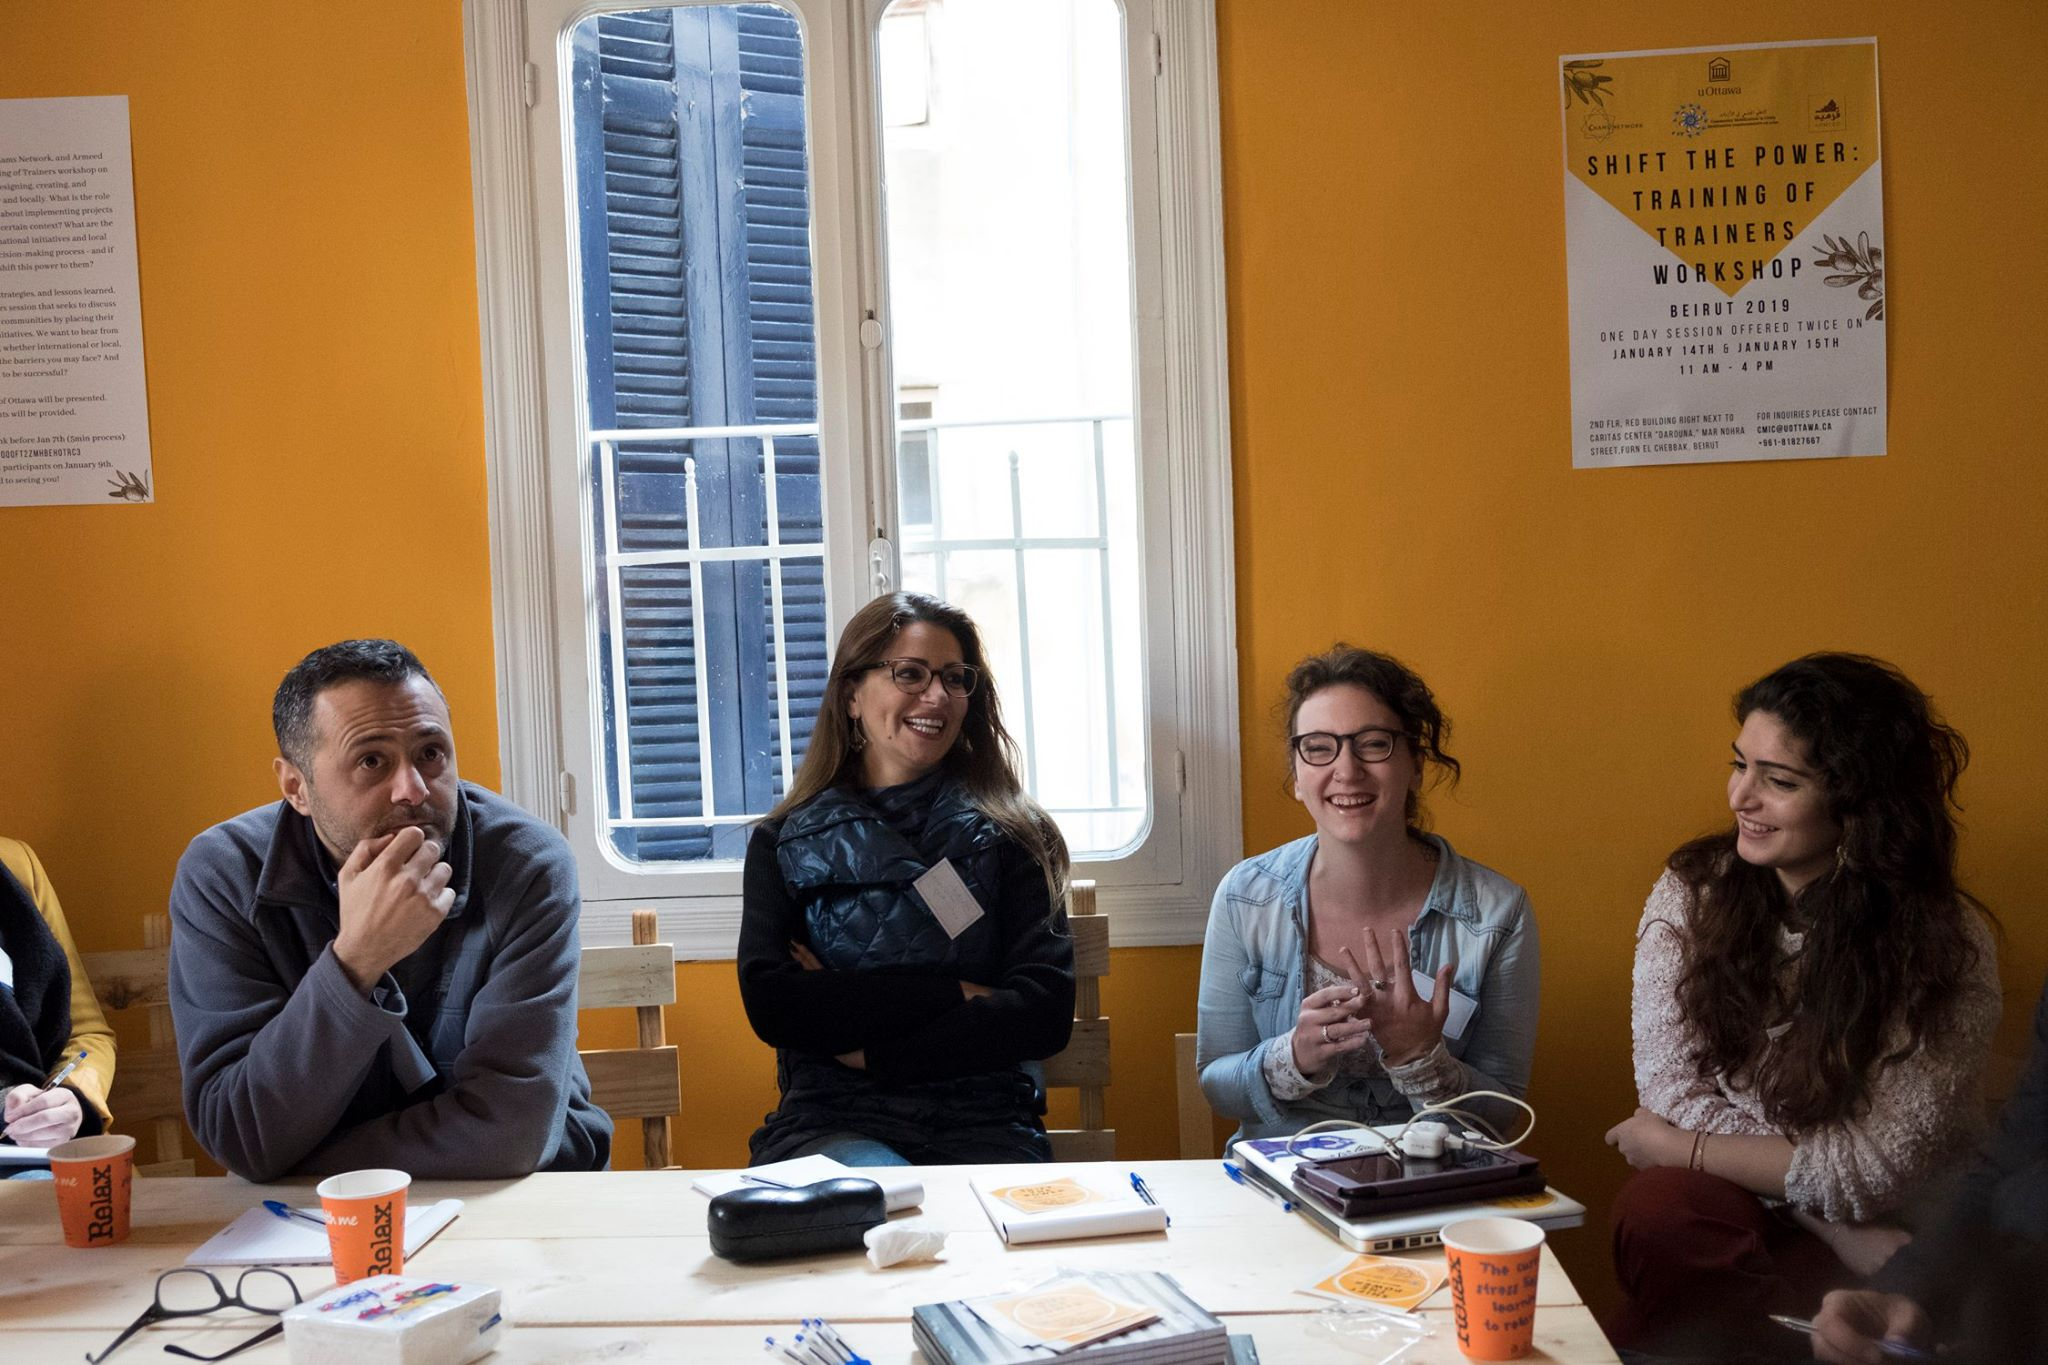 CMIC workshop at Shams Network in Beirut, featuring Diana El Richani of uOttawa (far right) and Megan Kelly of Youth Speak (to Diana's left).